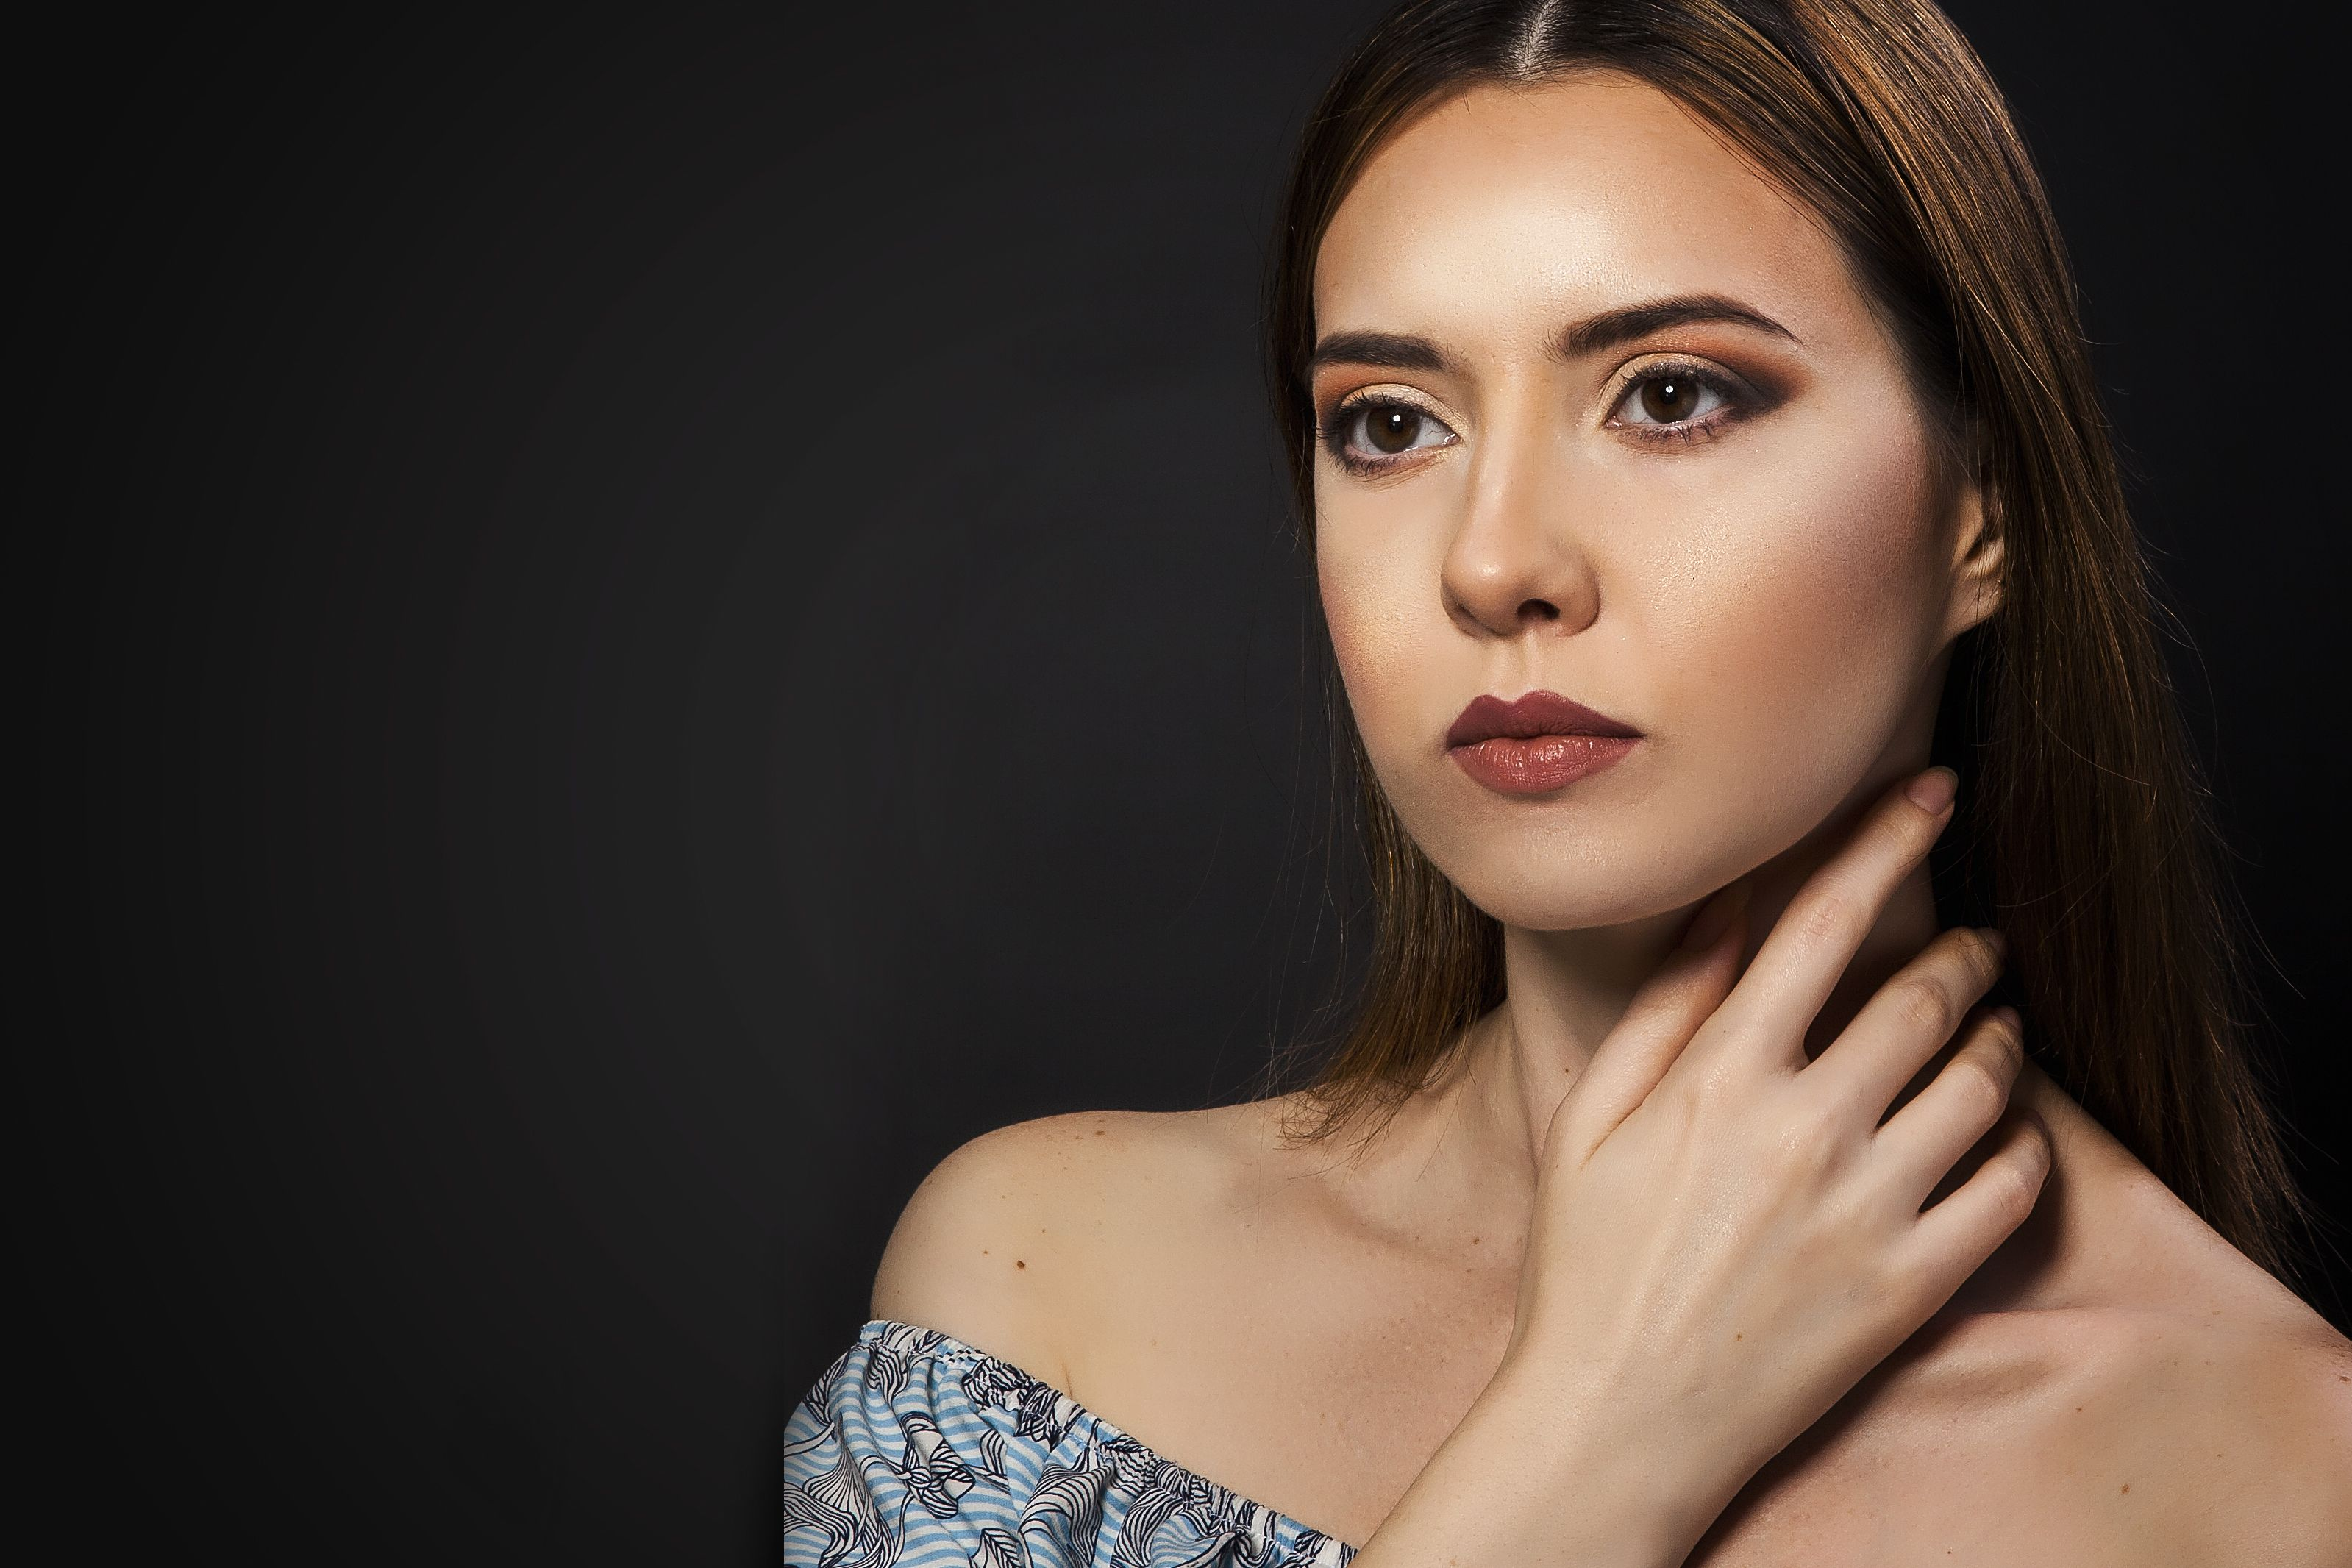 #beautiful #model take a glimpse of our students work. From basic to advance, student learn with the help of our #professional makeup artists.